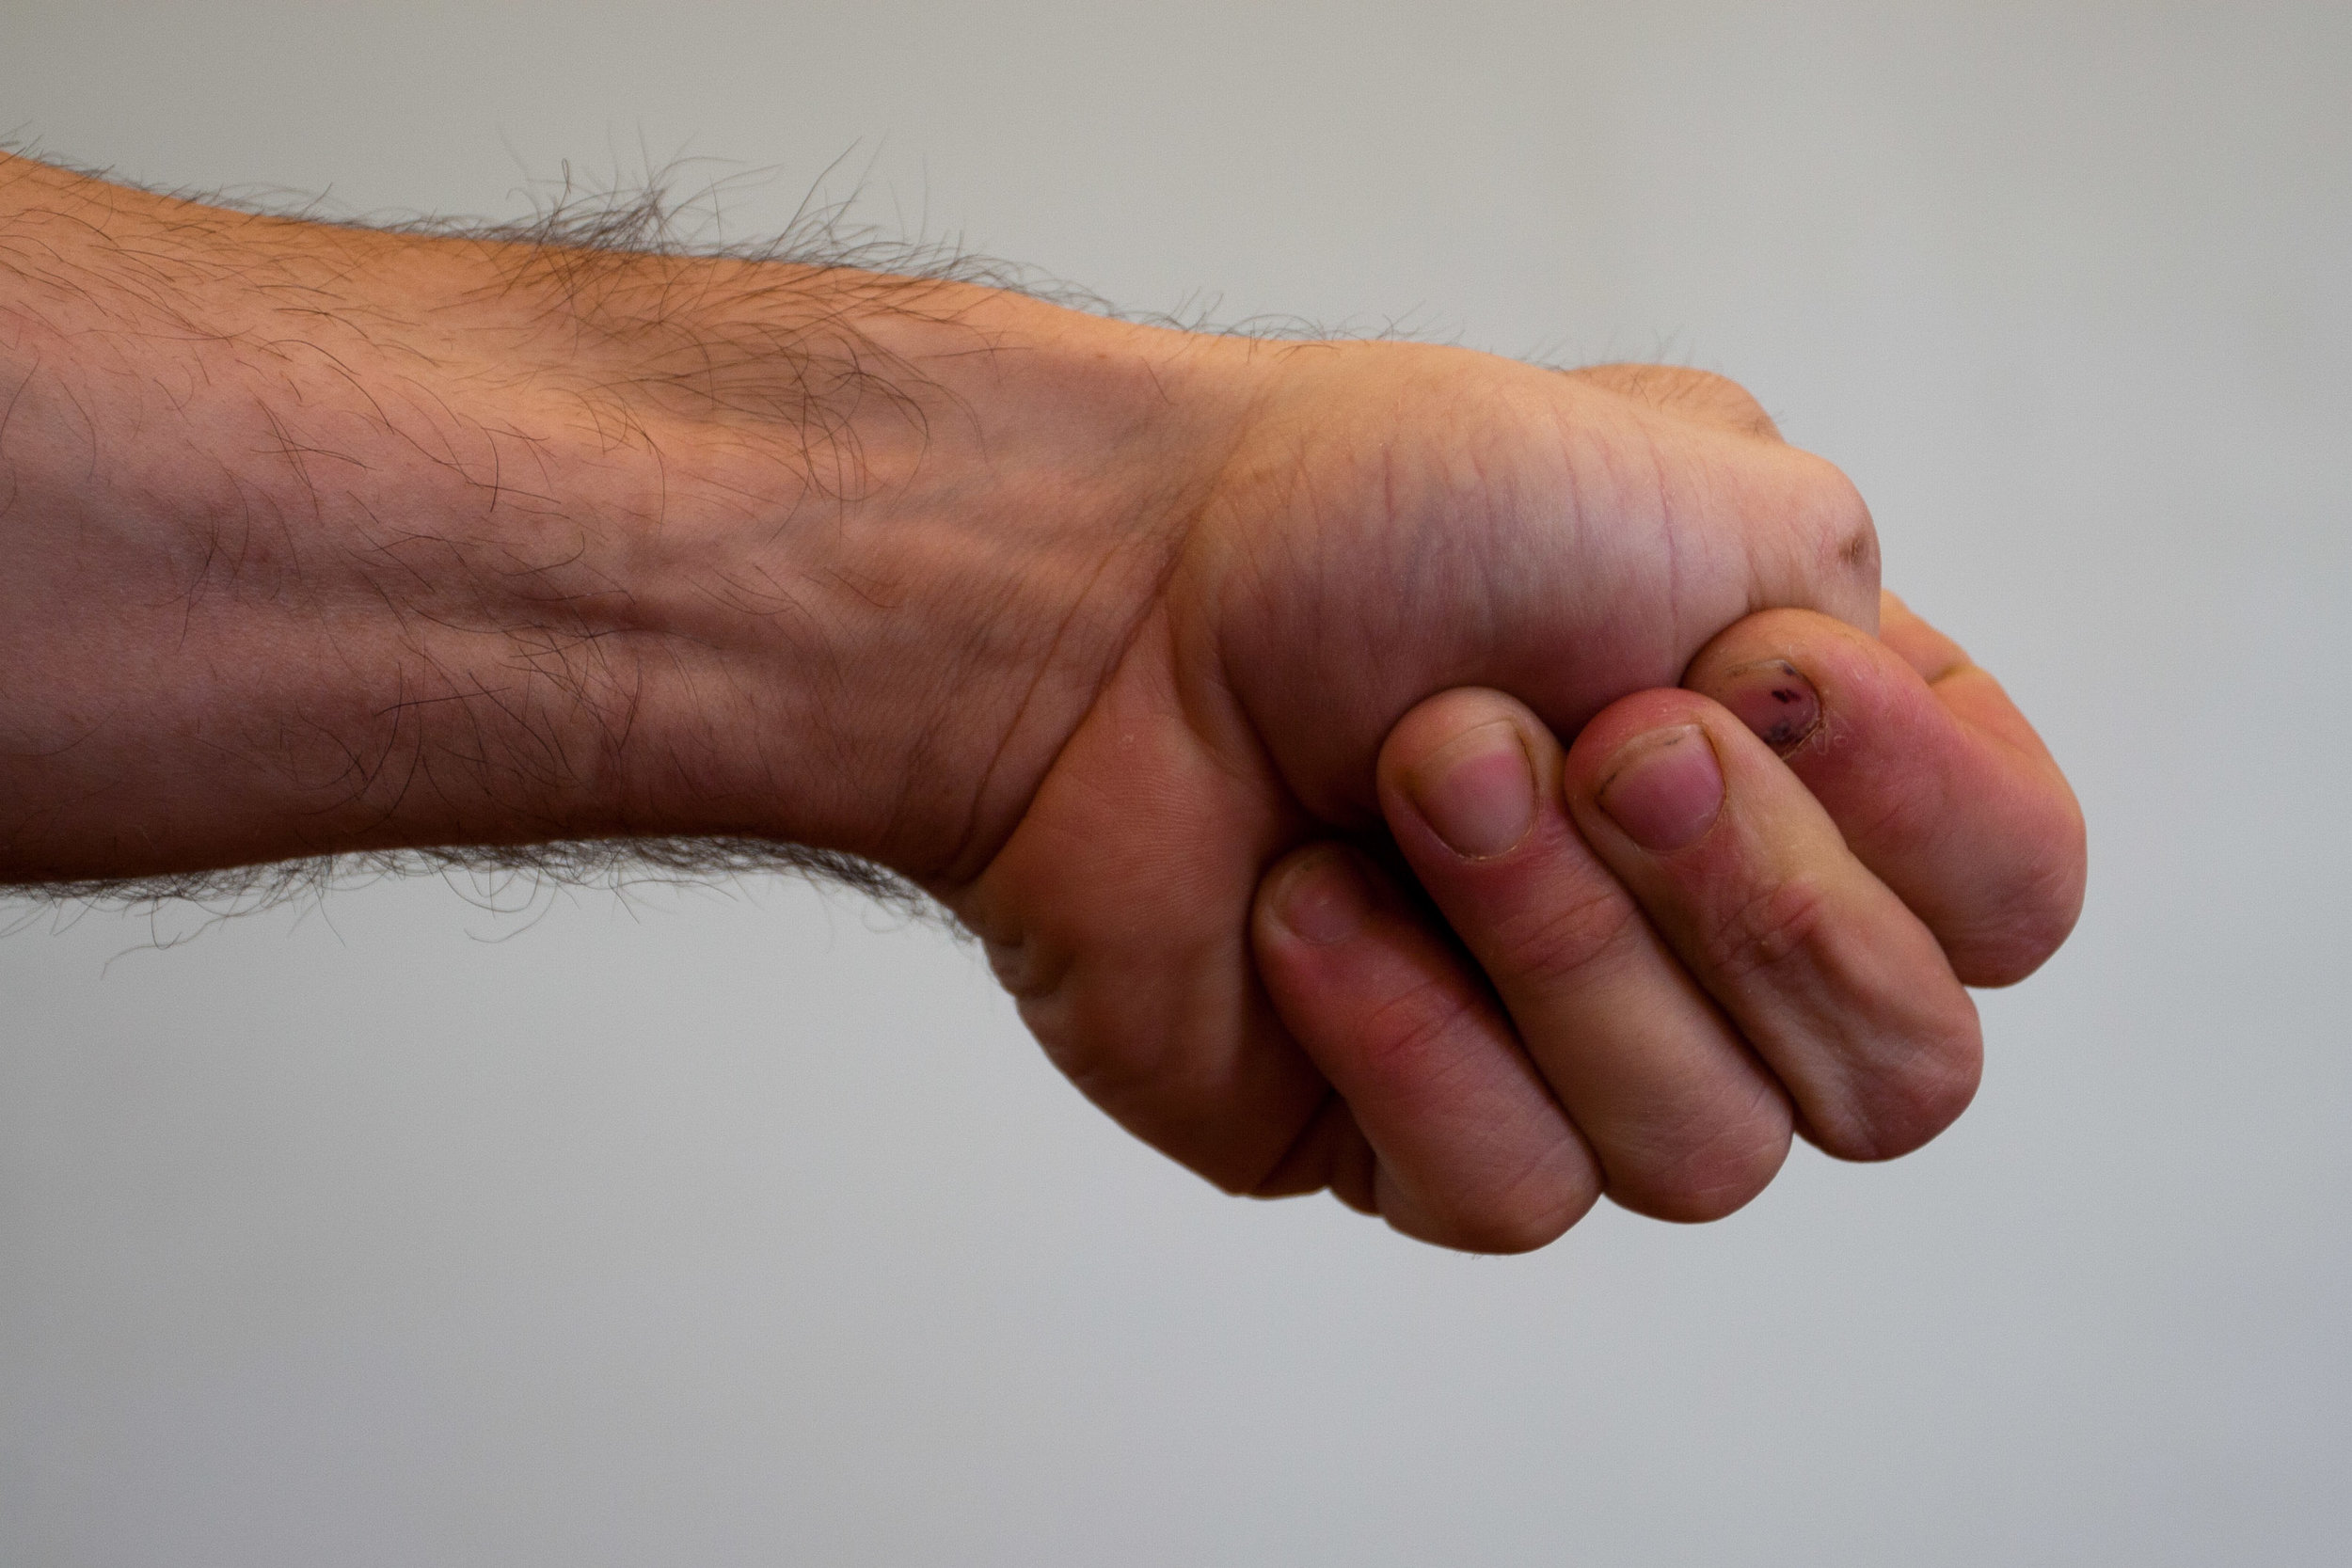 Thumb-in-Fist Wrist Stretch